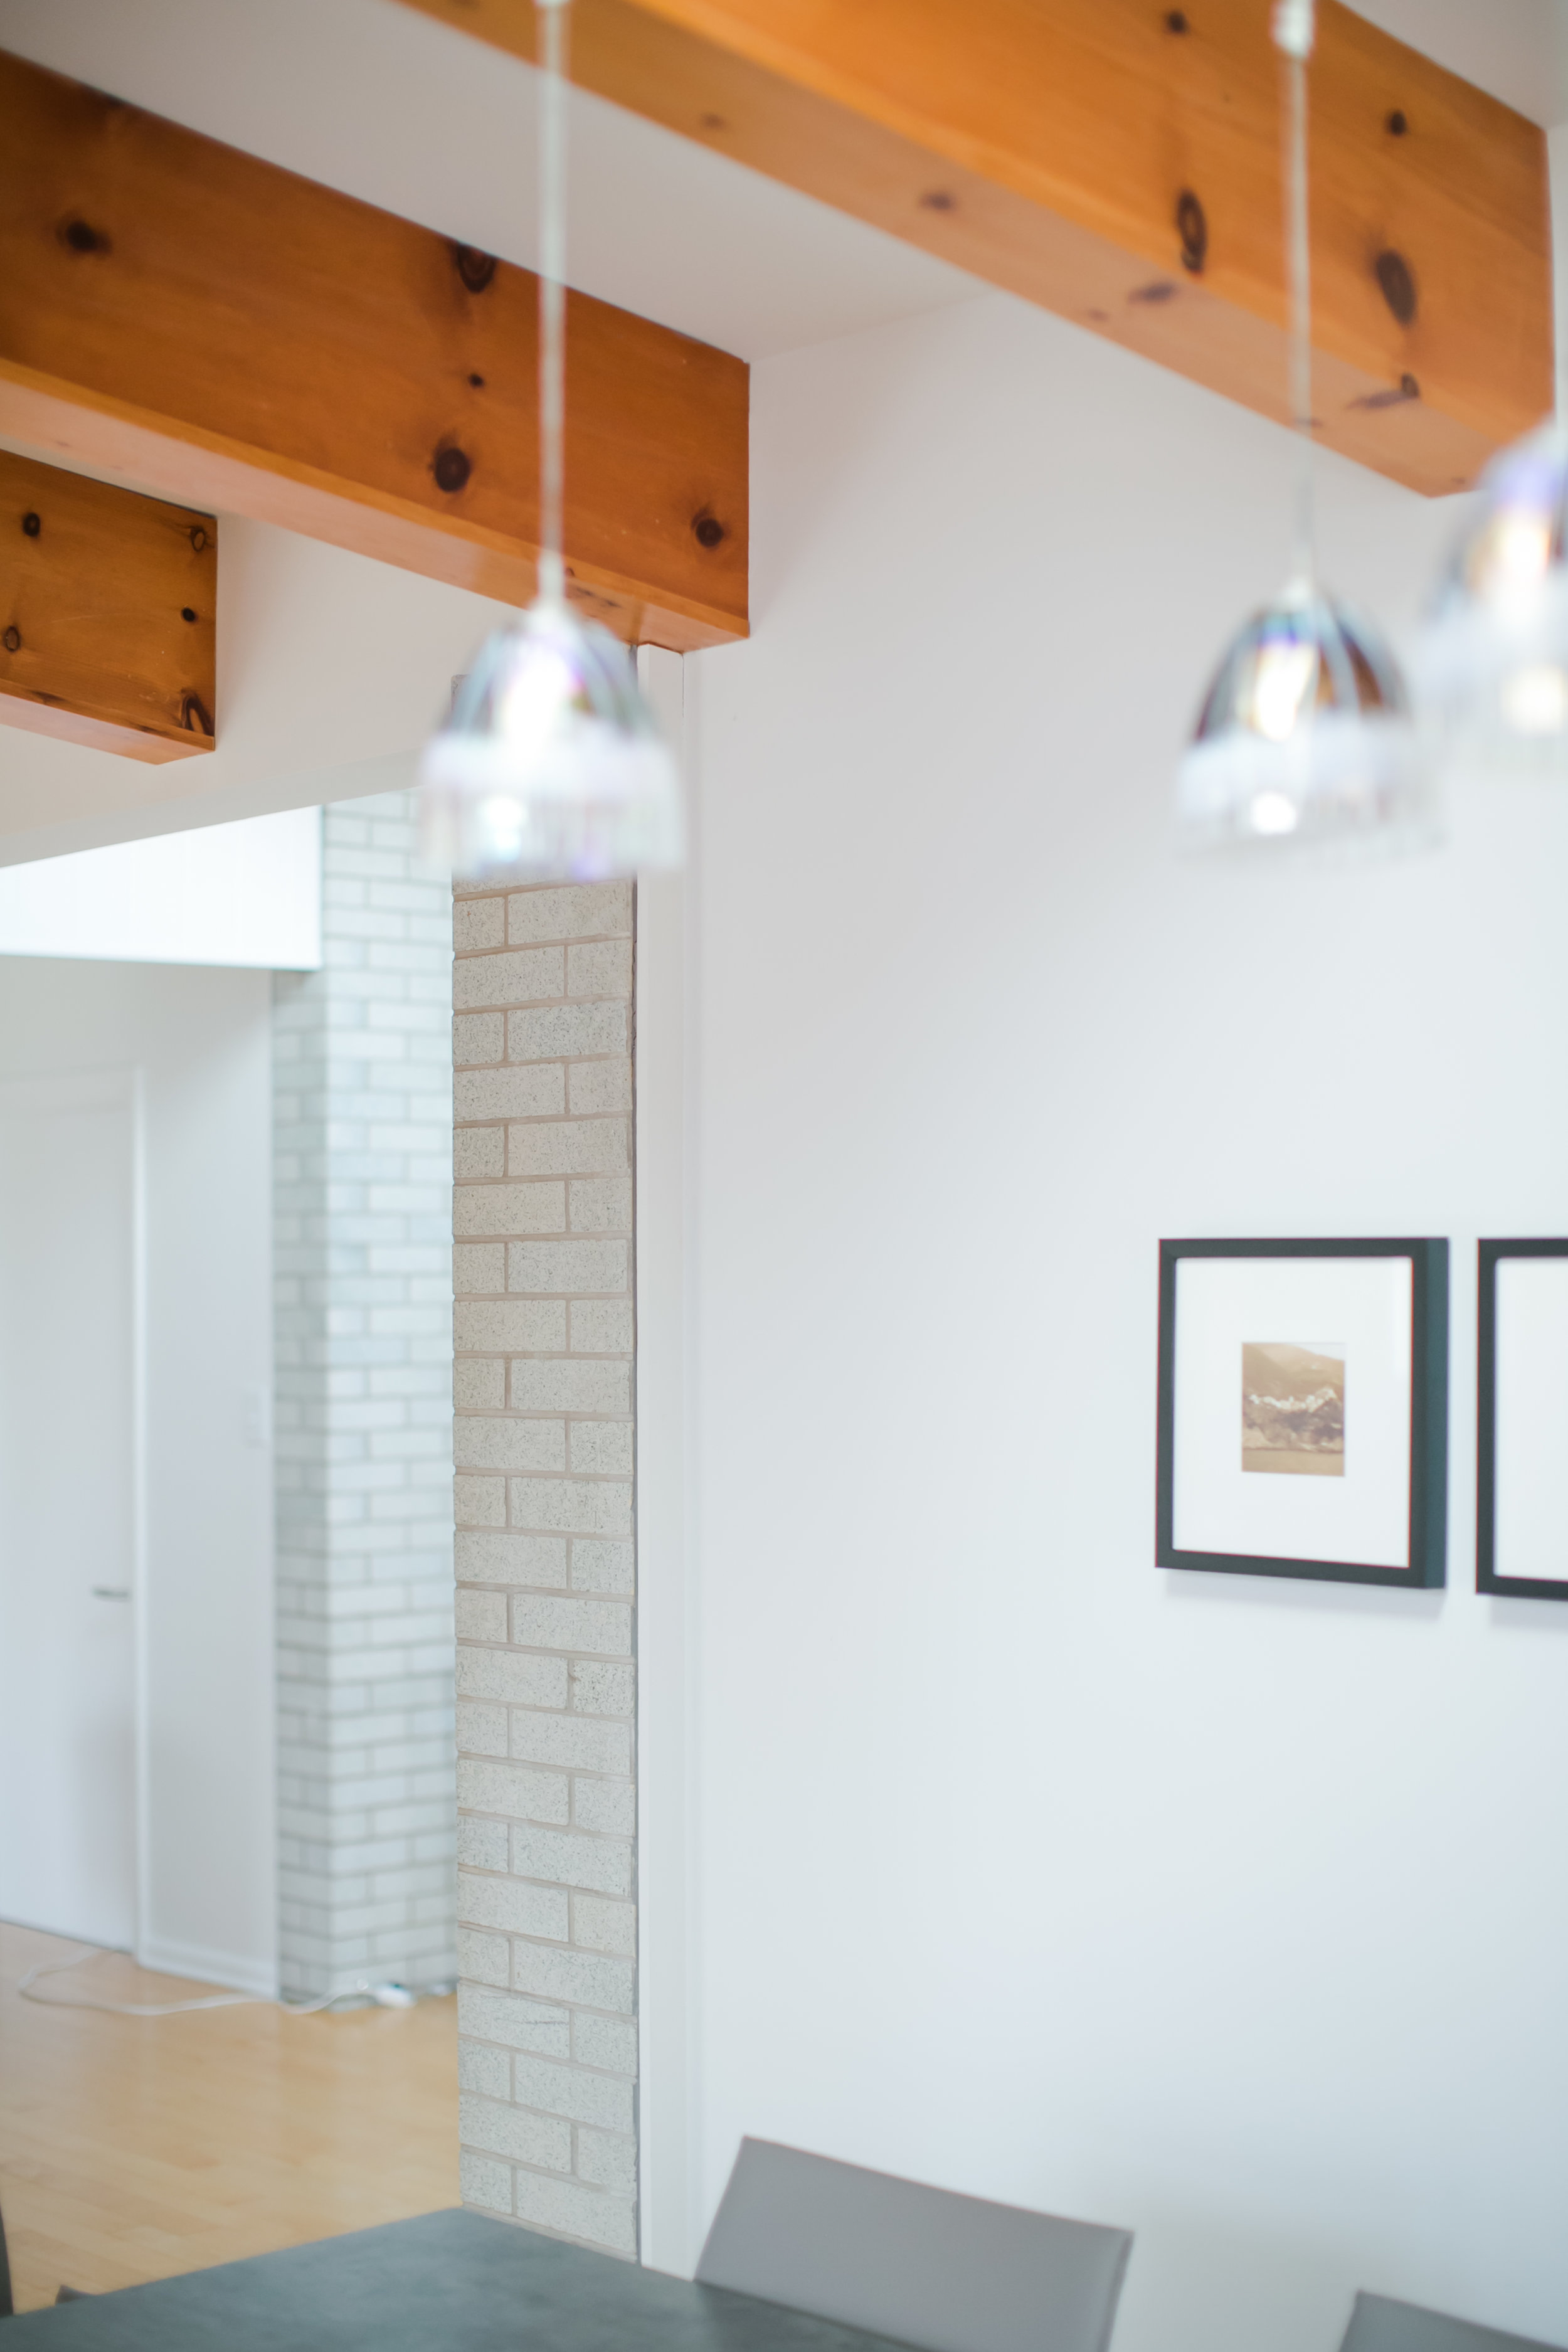 White walls, original brick, and exposed wooden beams starkly contrast the interior design of the home's new addition.